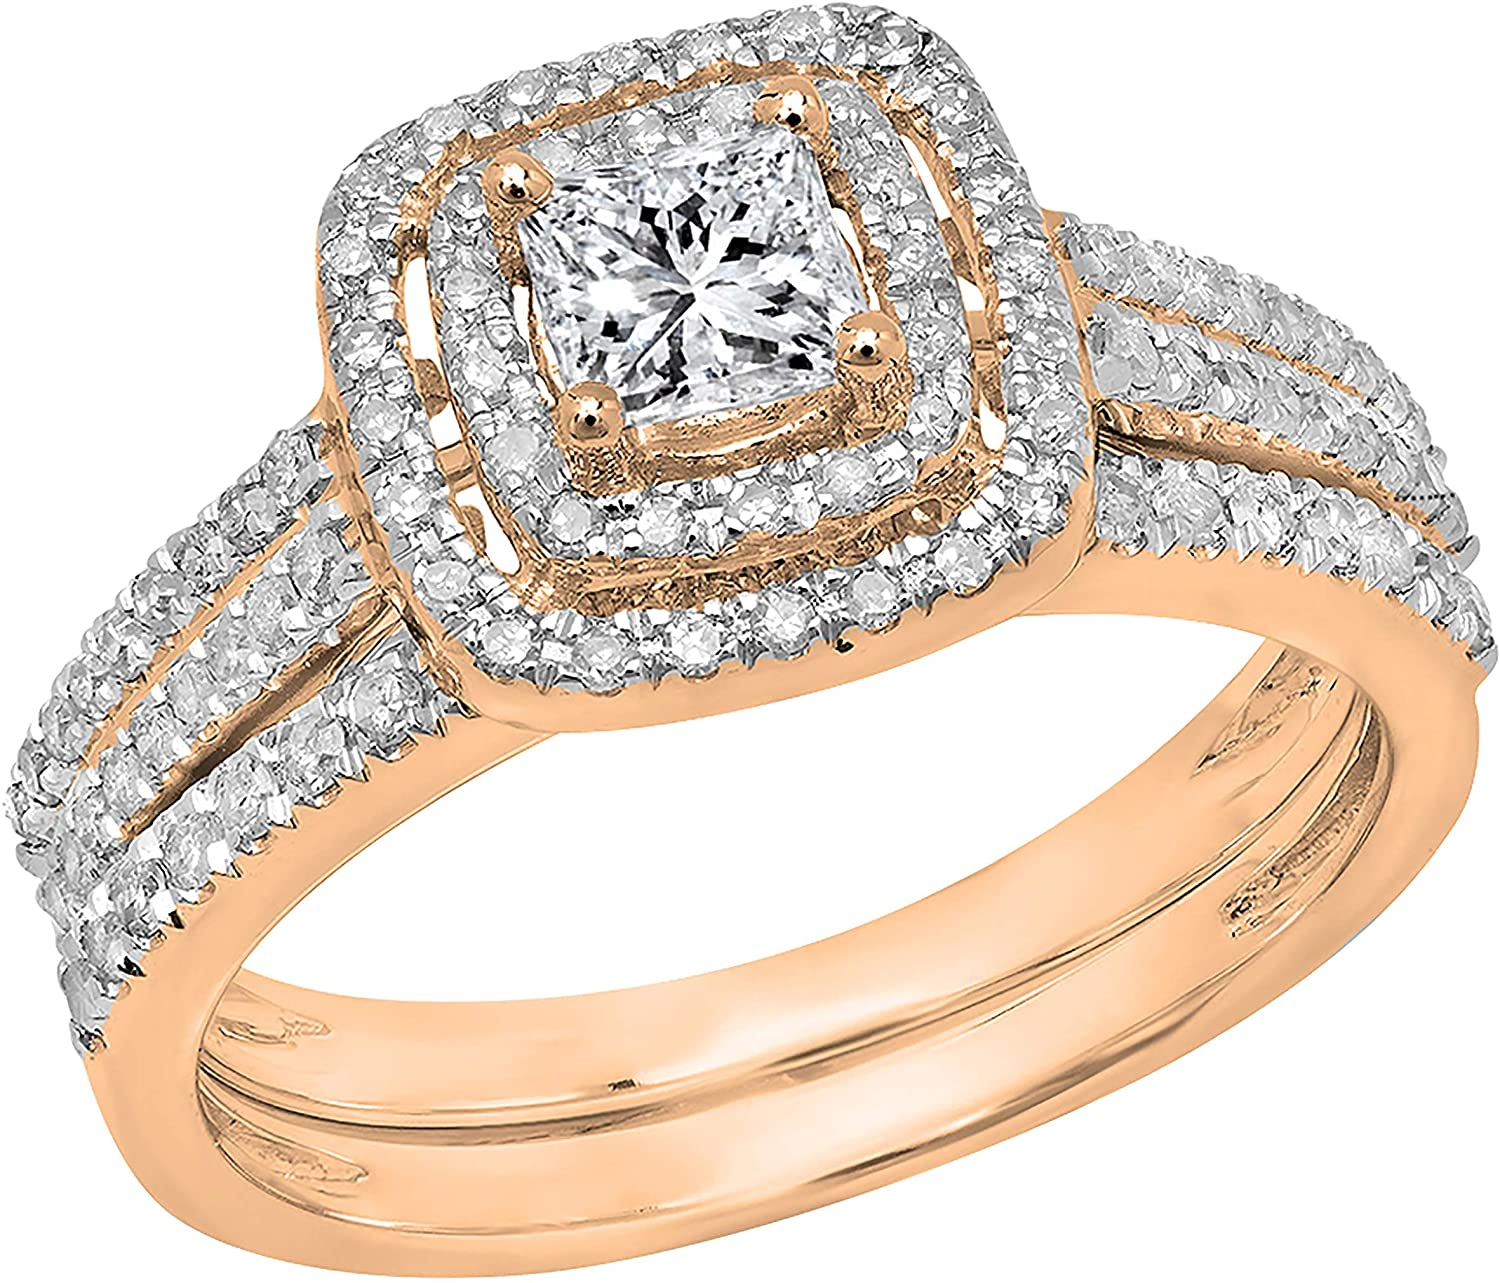 Dazzlingrock Collection 0.95 Carat (ctw) Princess & Round White Diamond Halo Style Bridal Engagement Ring Band Set 1 CT, Available In 10K/14K/18K Gold